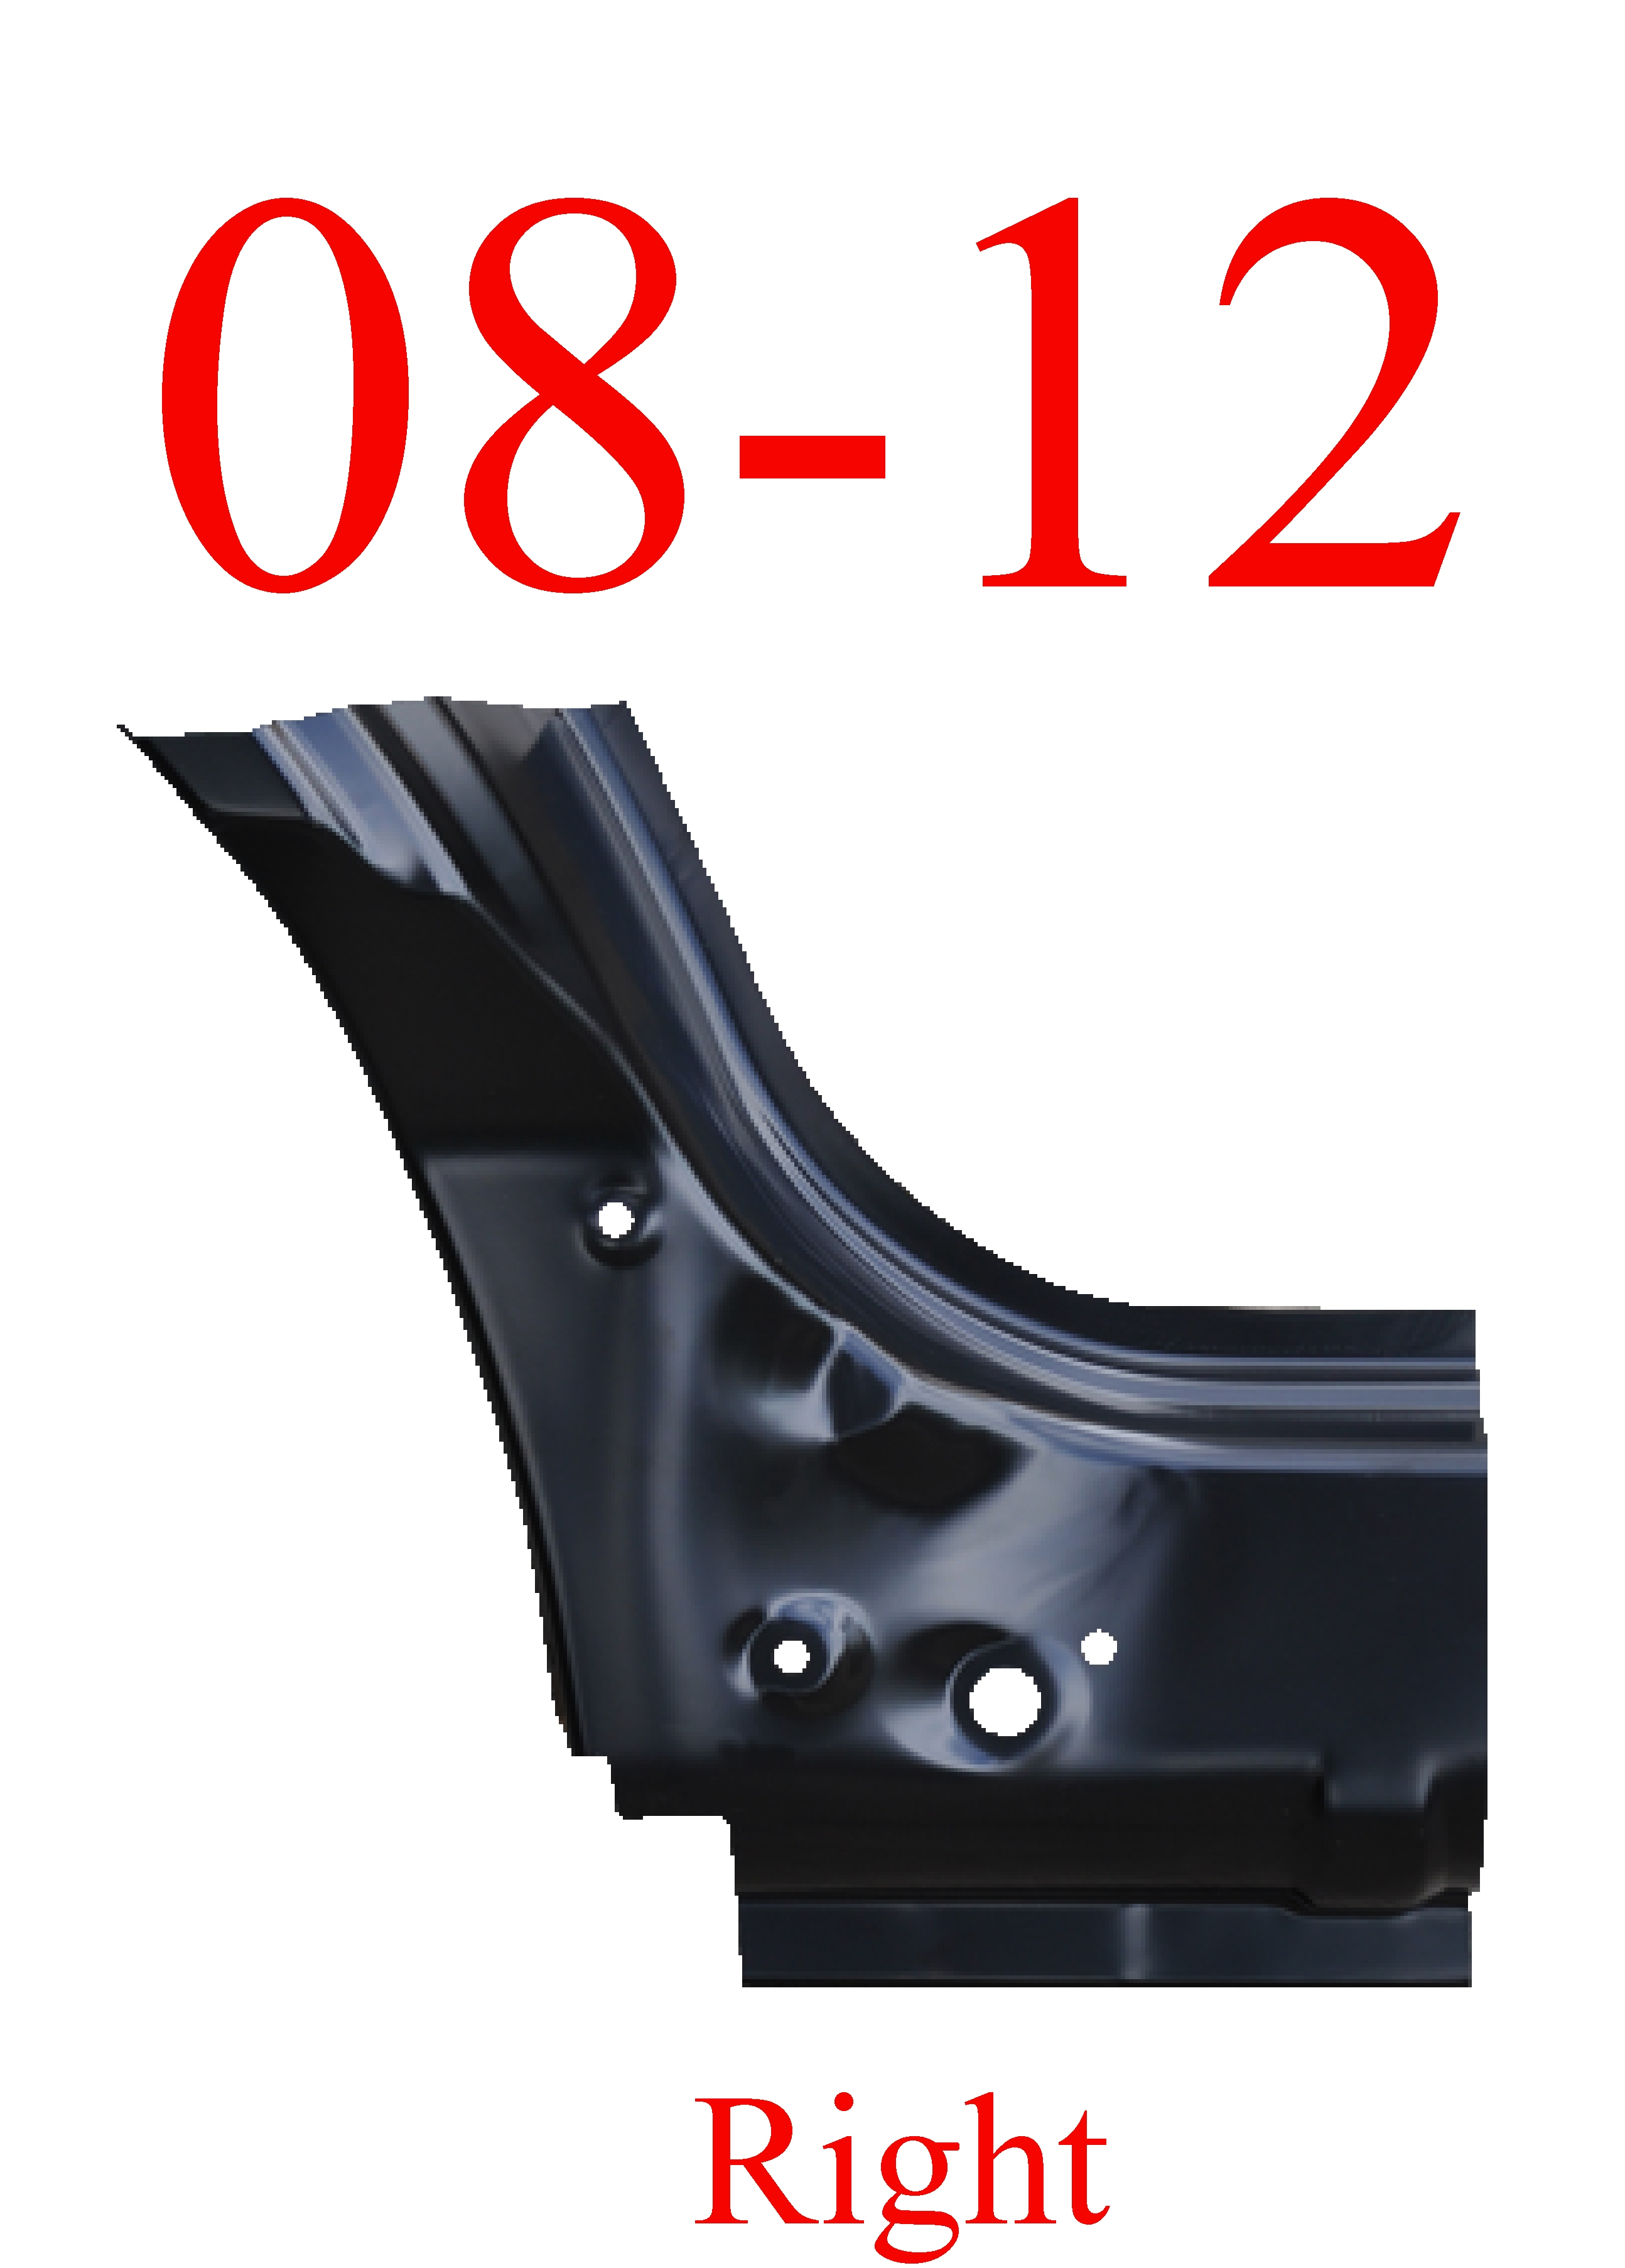 08-11 Mazda Tribute Right Front Dog Leg